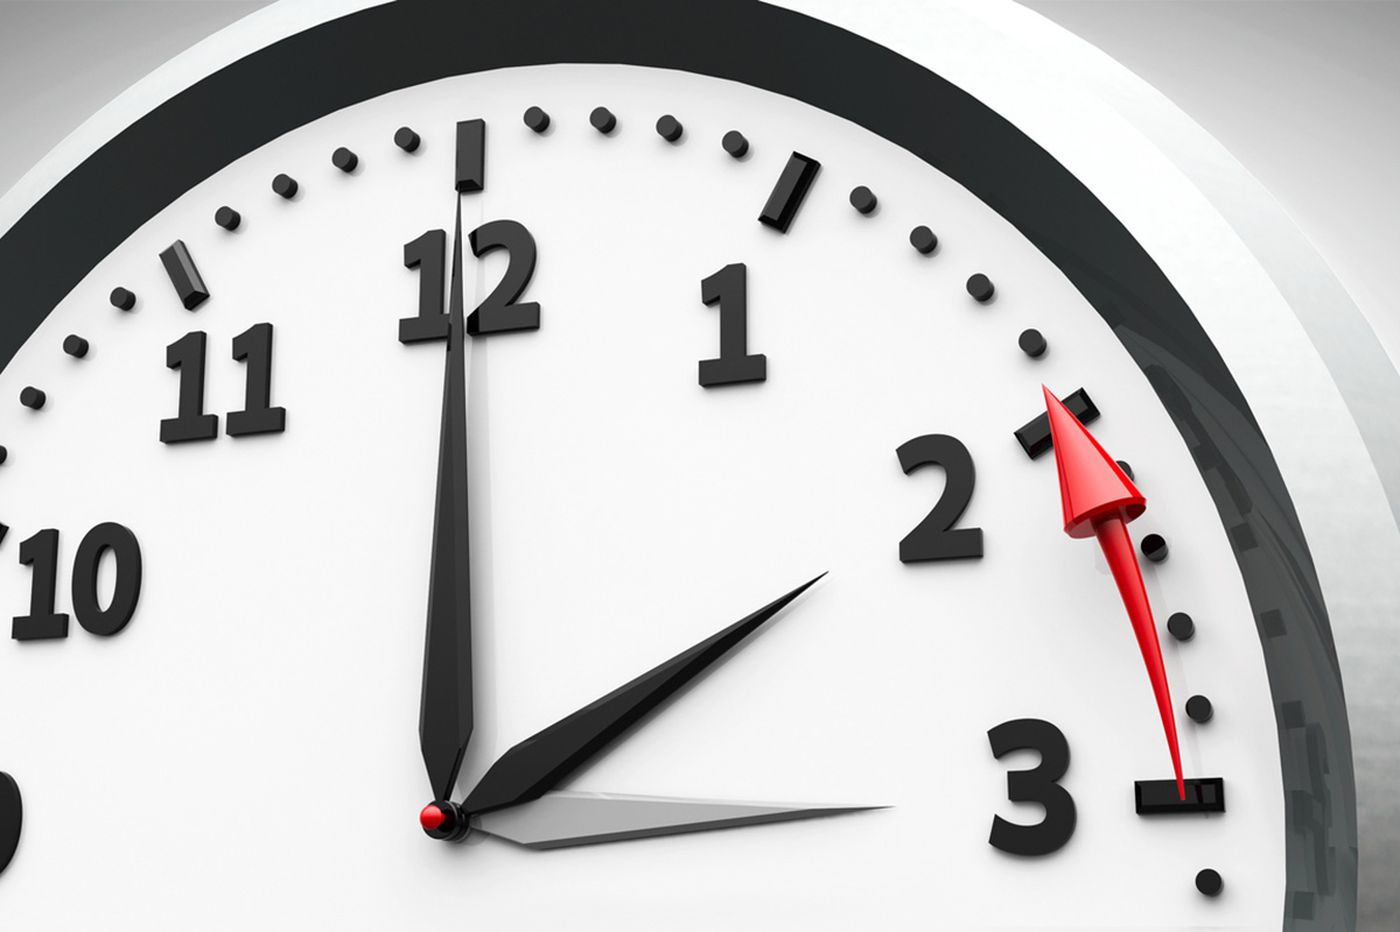 Another reason to hate daylight saving time: More assaults